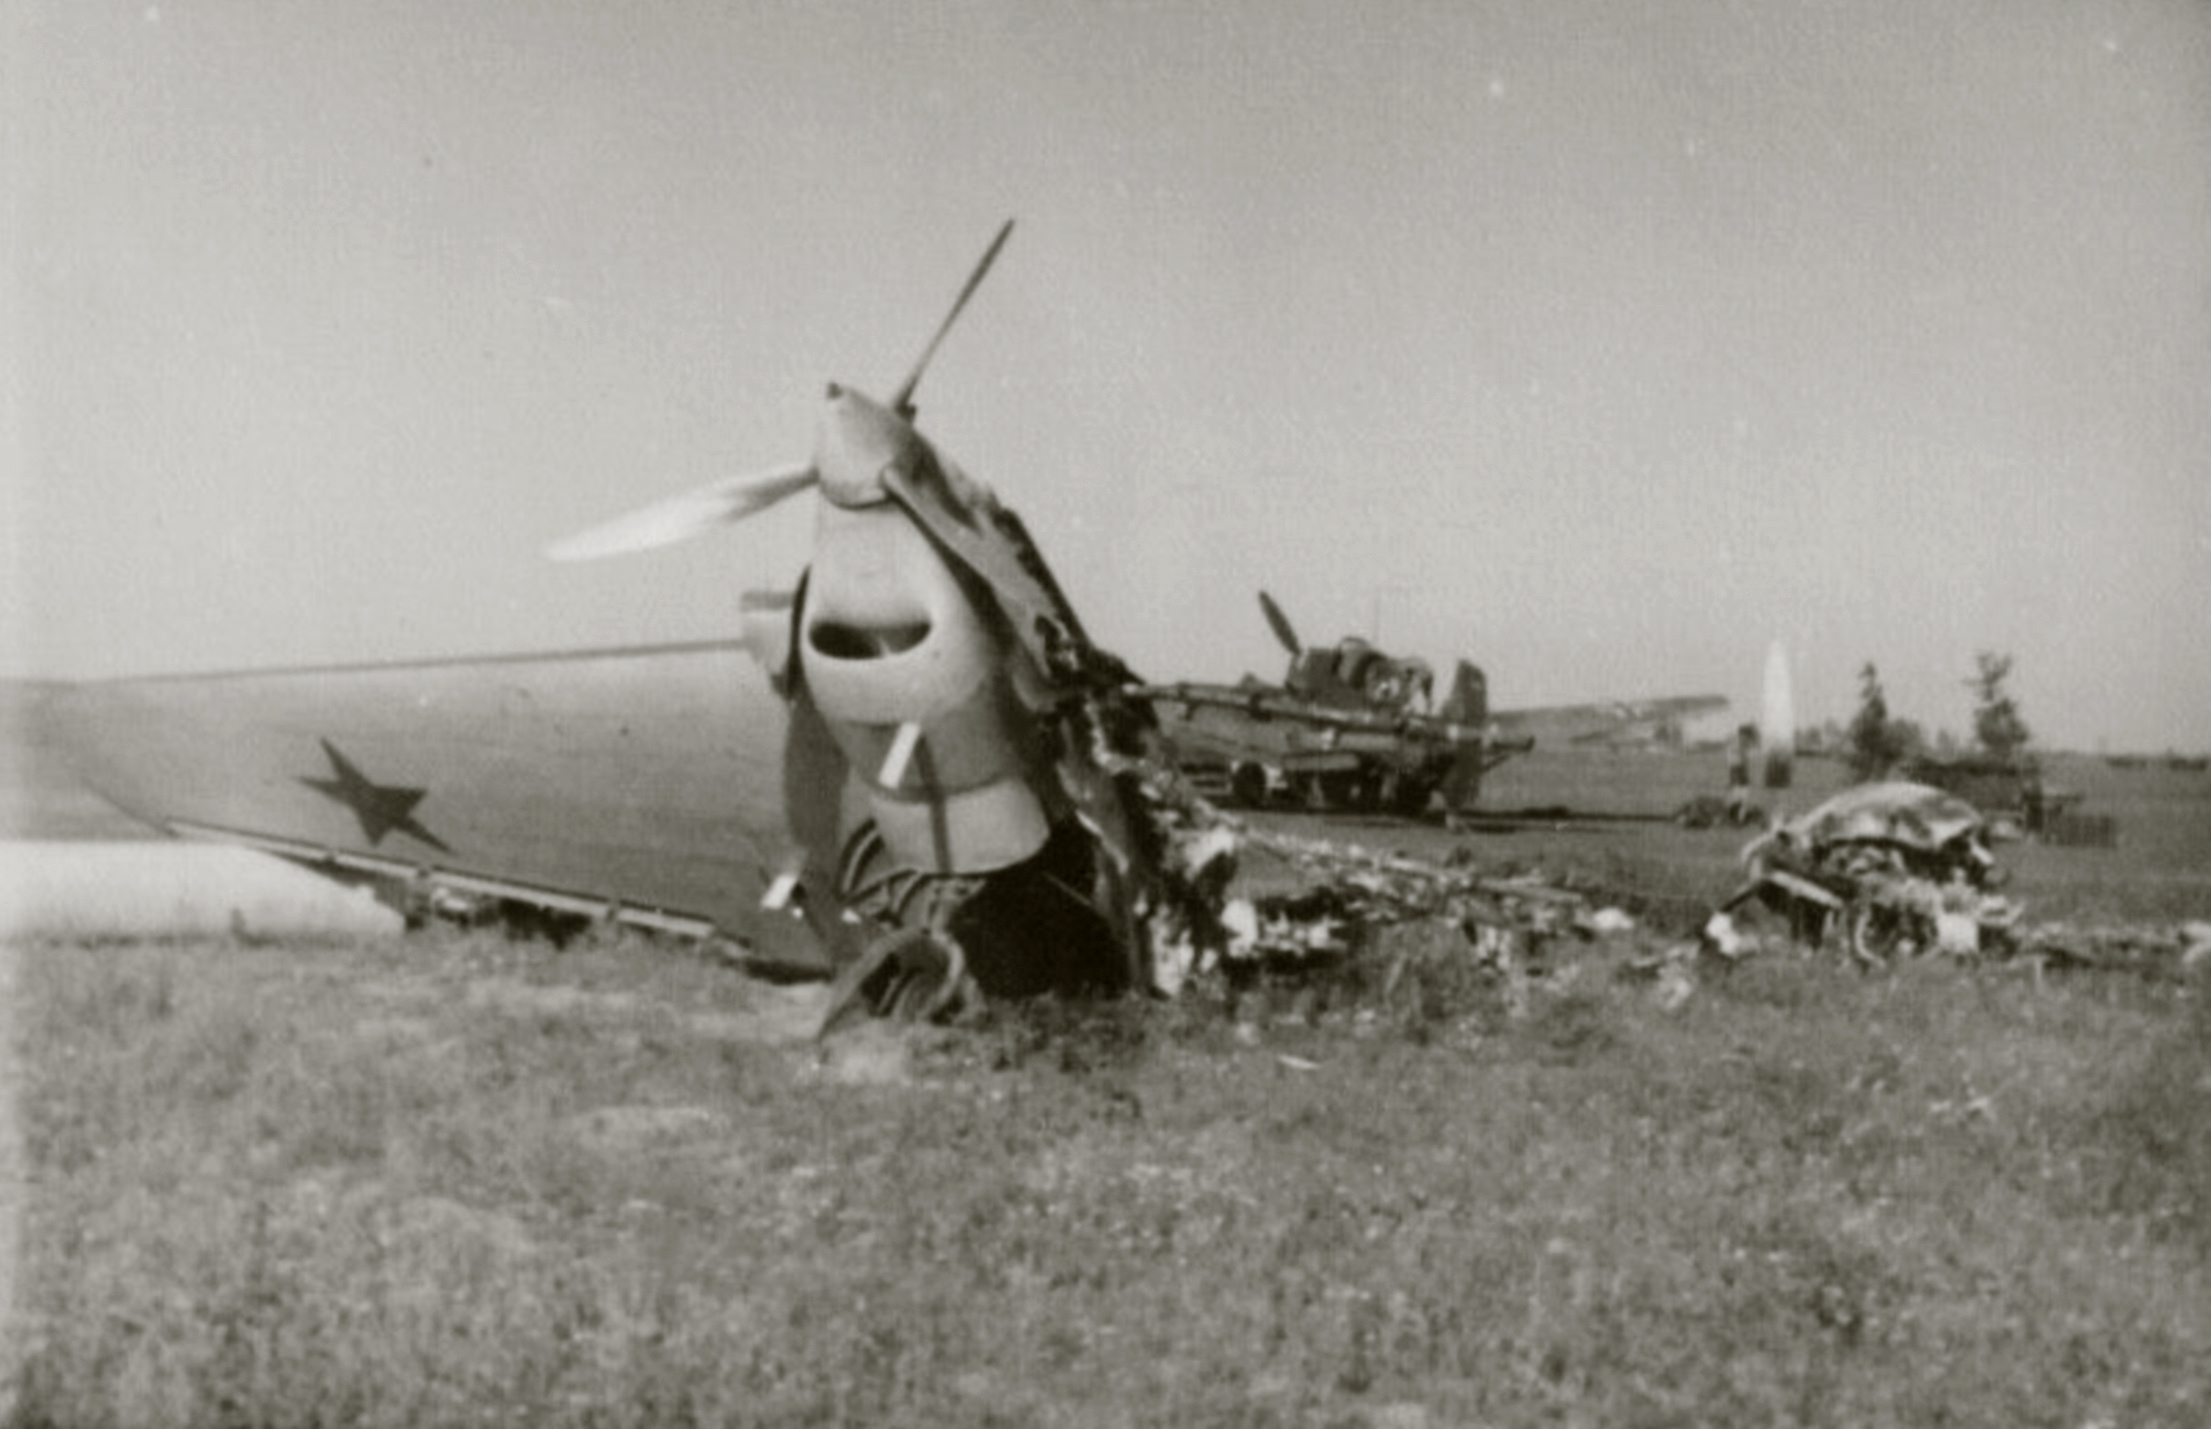 Petlyakov Pe 2 wing section remains on a captured Soviet airfield Operation Barbarossa 1941 ebay 01